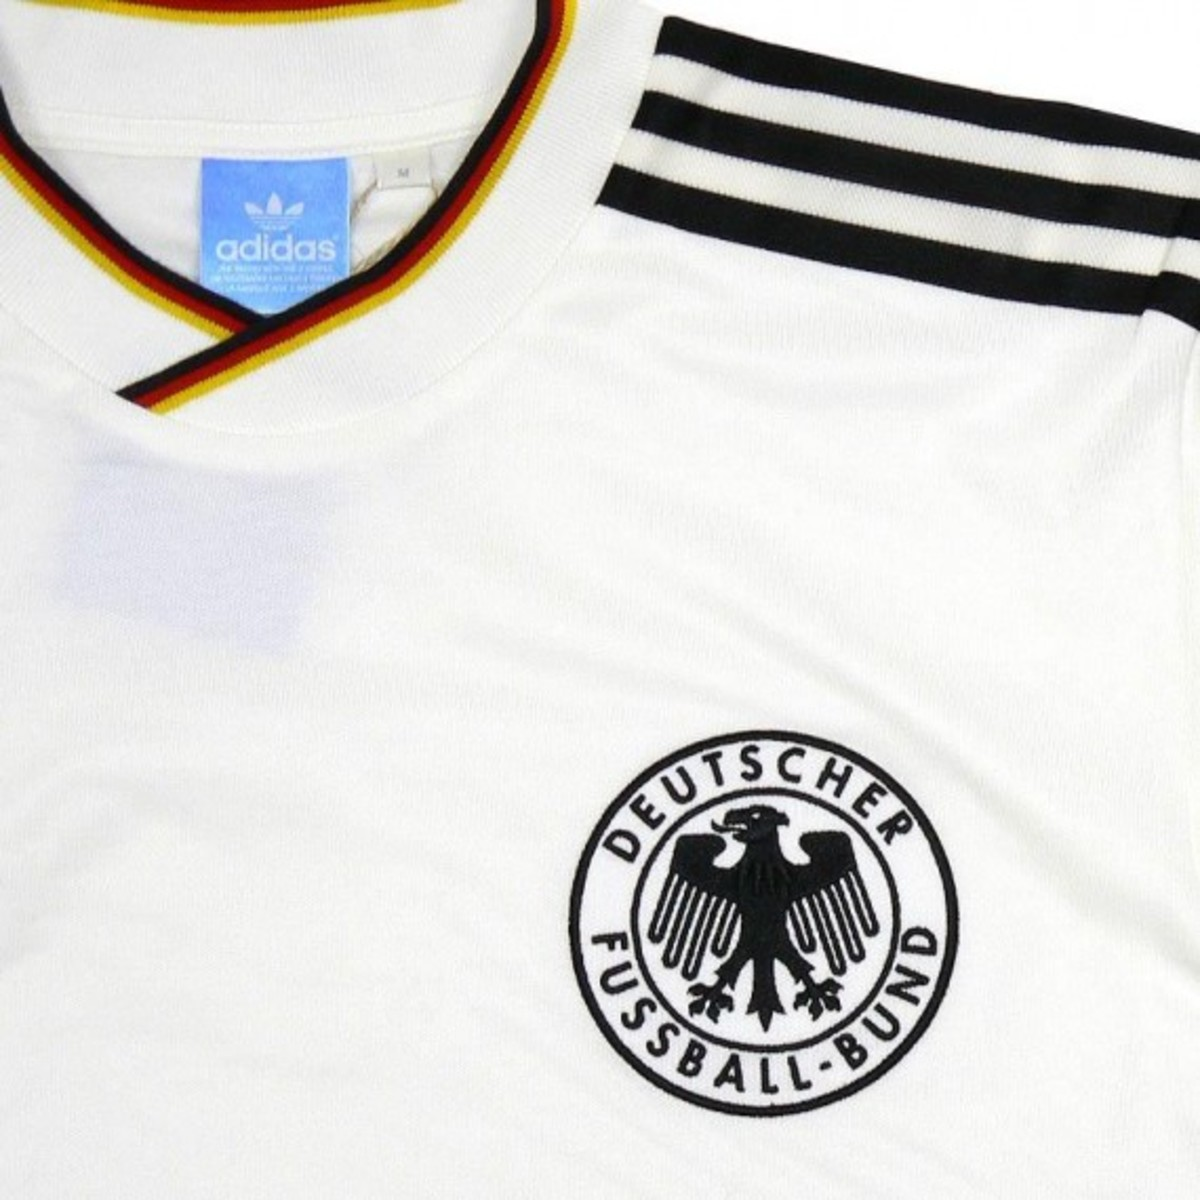 adidas-world-cup-celebration-pack-germany-09